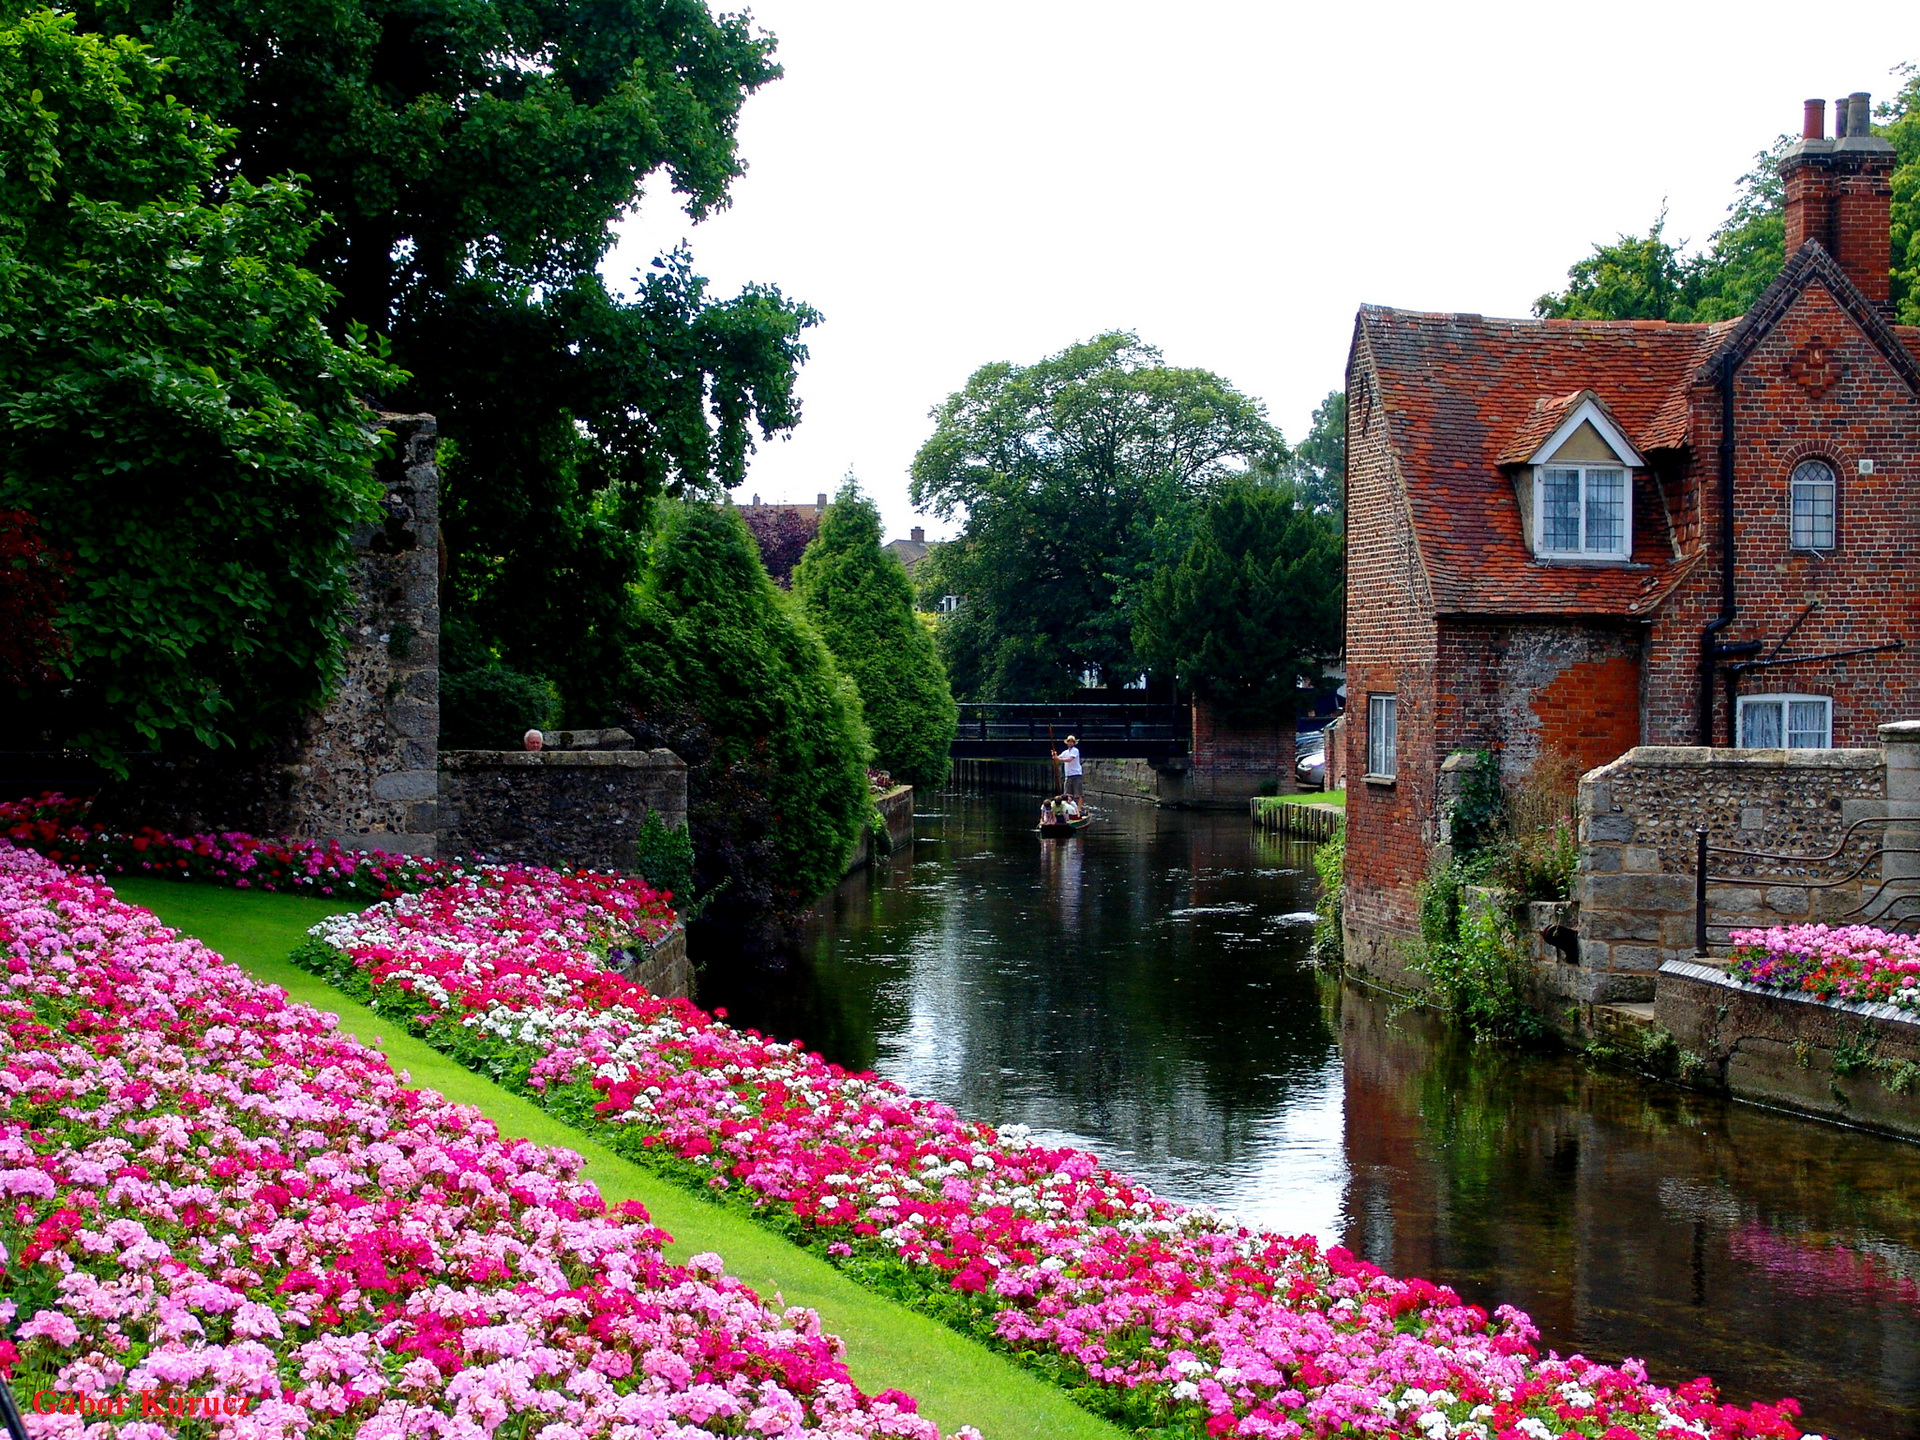 canterbury Canterbury once one of medieval europe's great places of pilgrimages, explore the cobbled streets and hidden gems of this world-famous cathedral city.